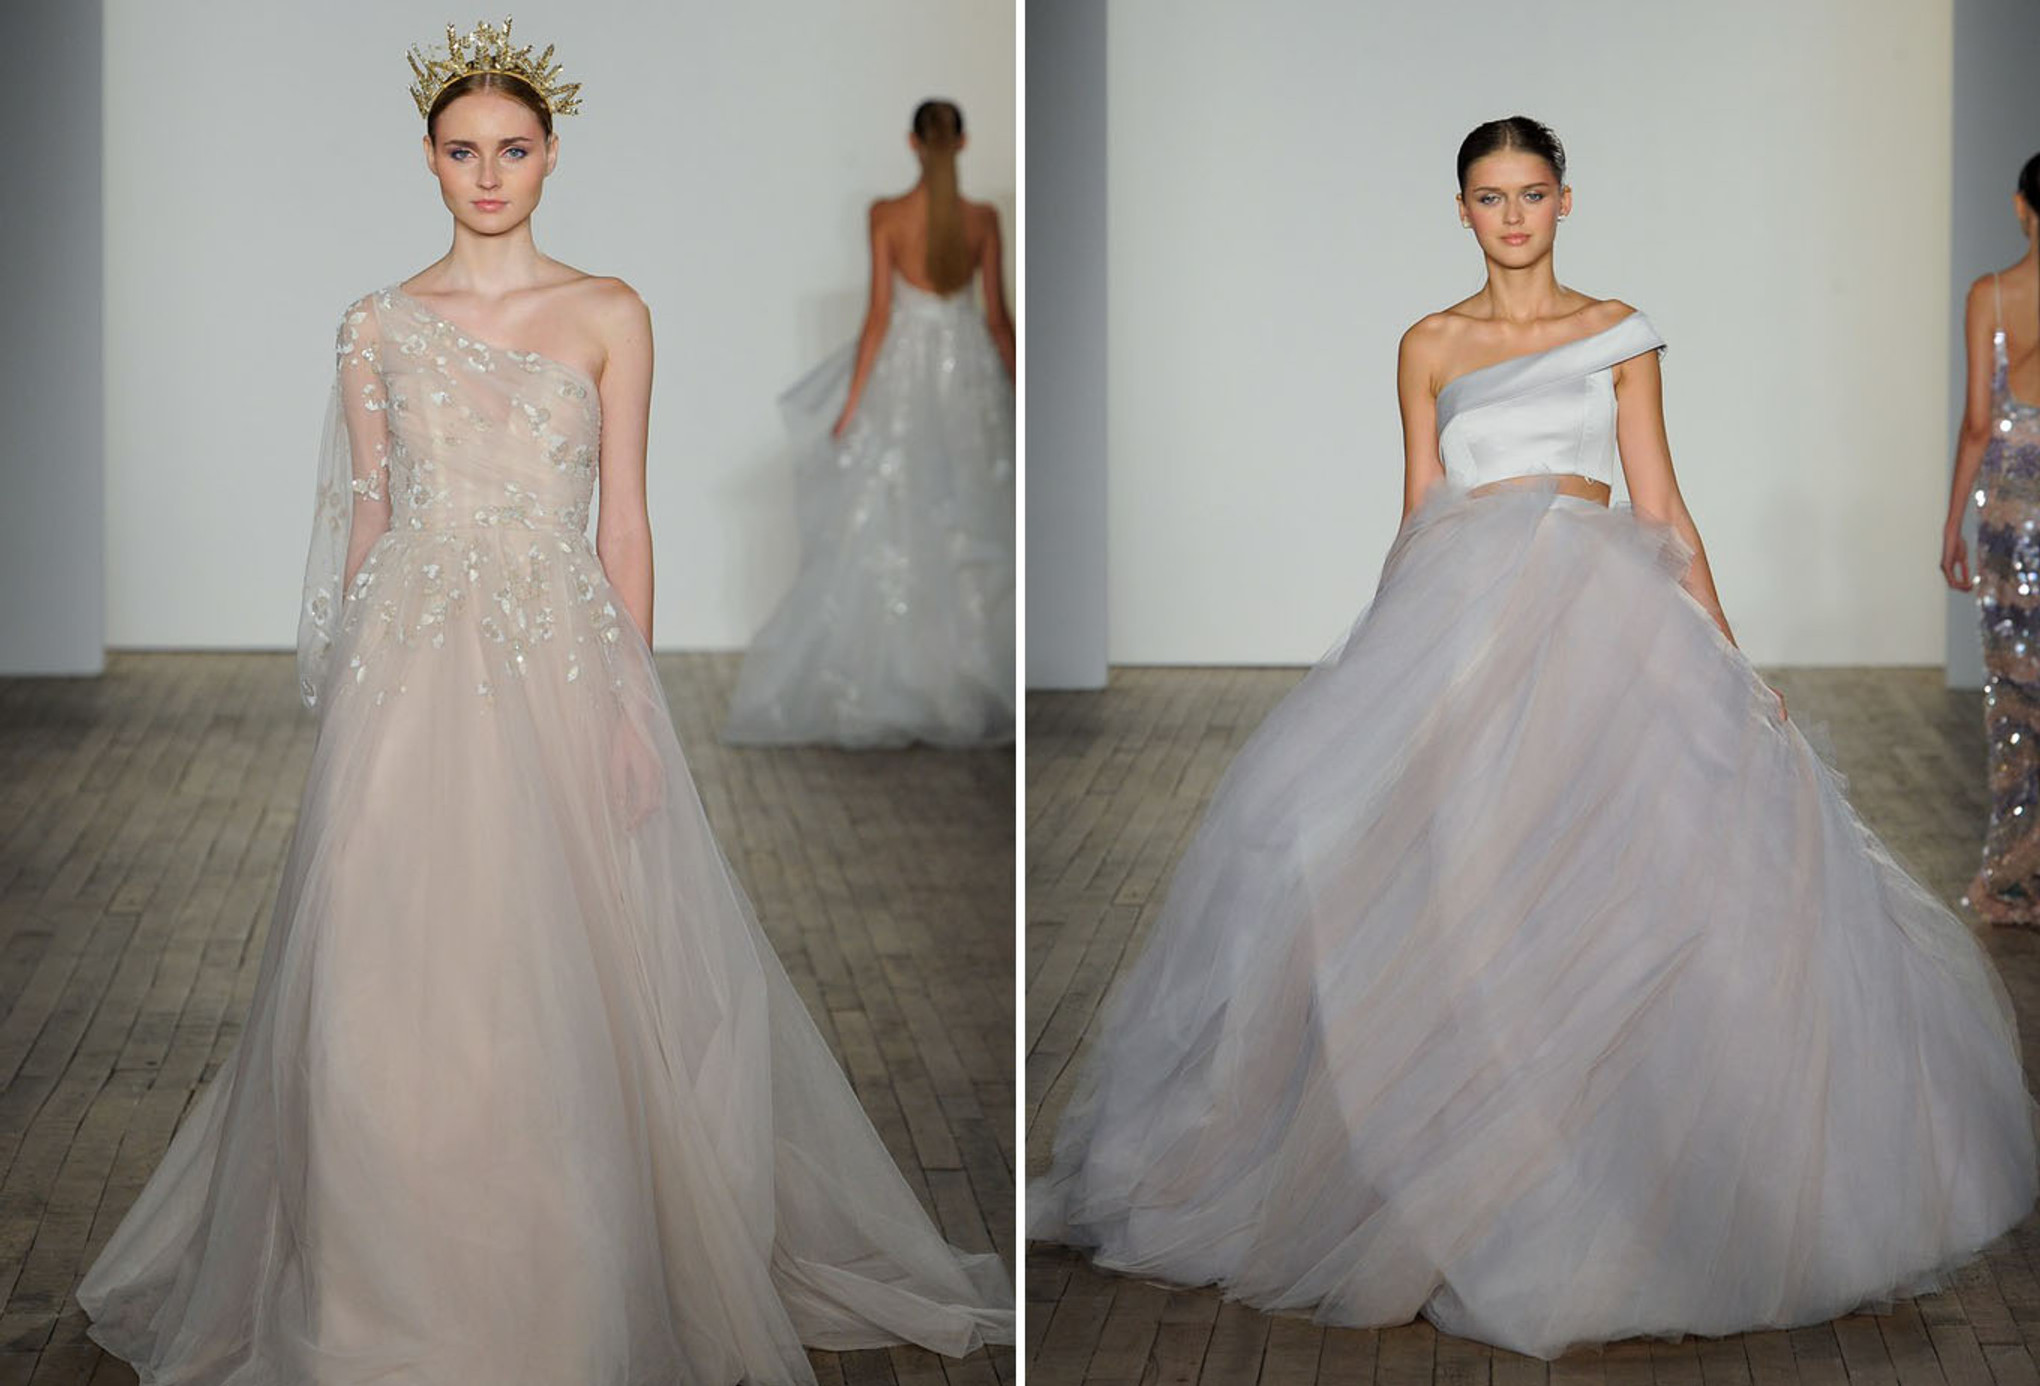 15 Inspiring Wedding Gown Trends From Bridal Fashion Week Fall